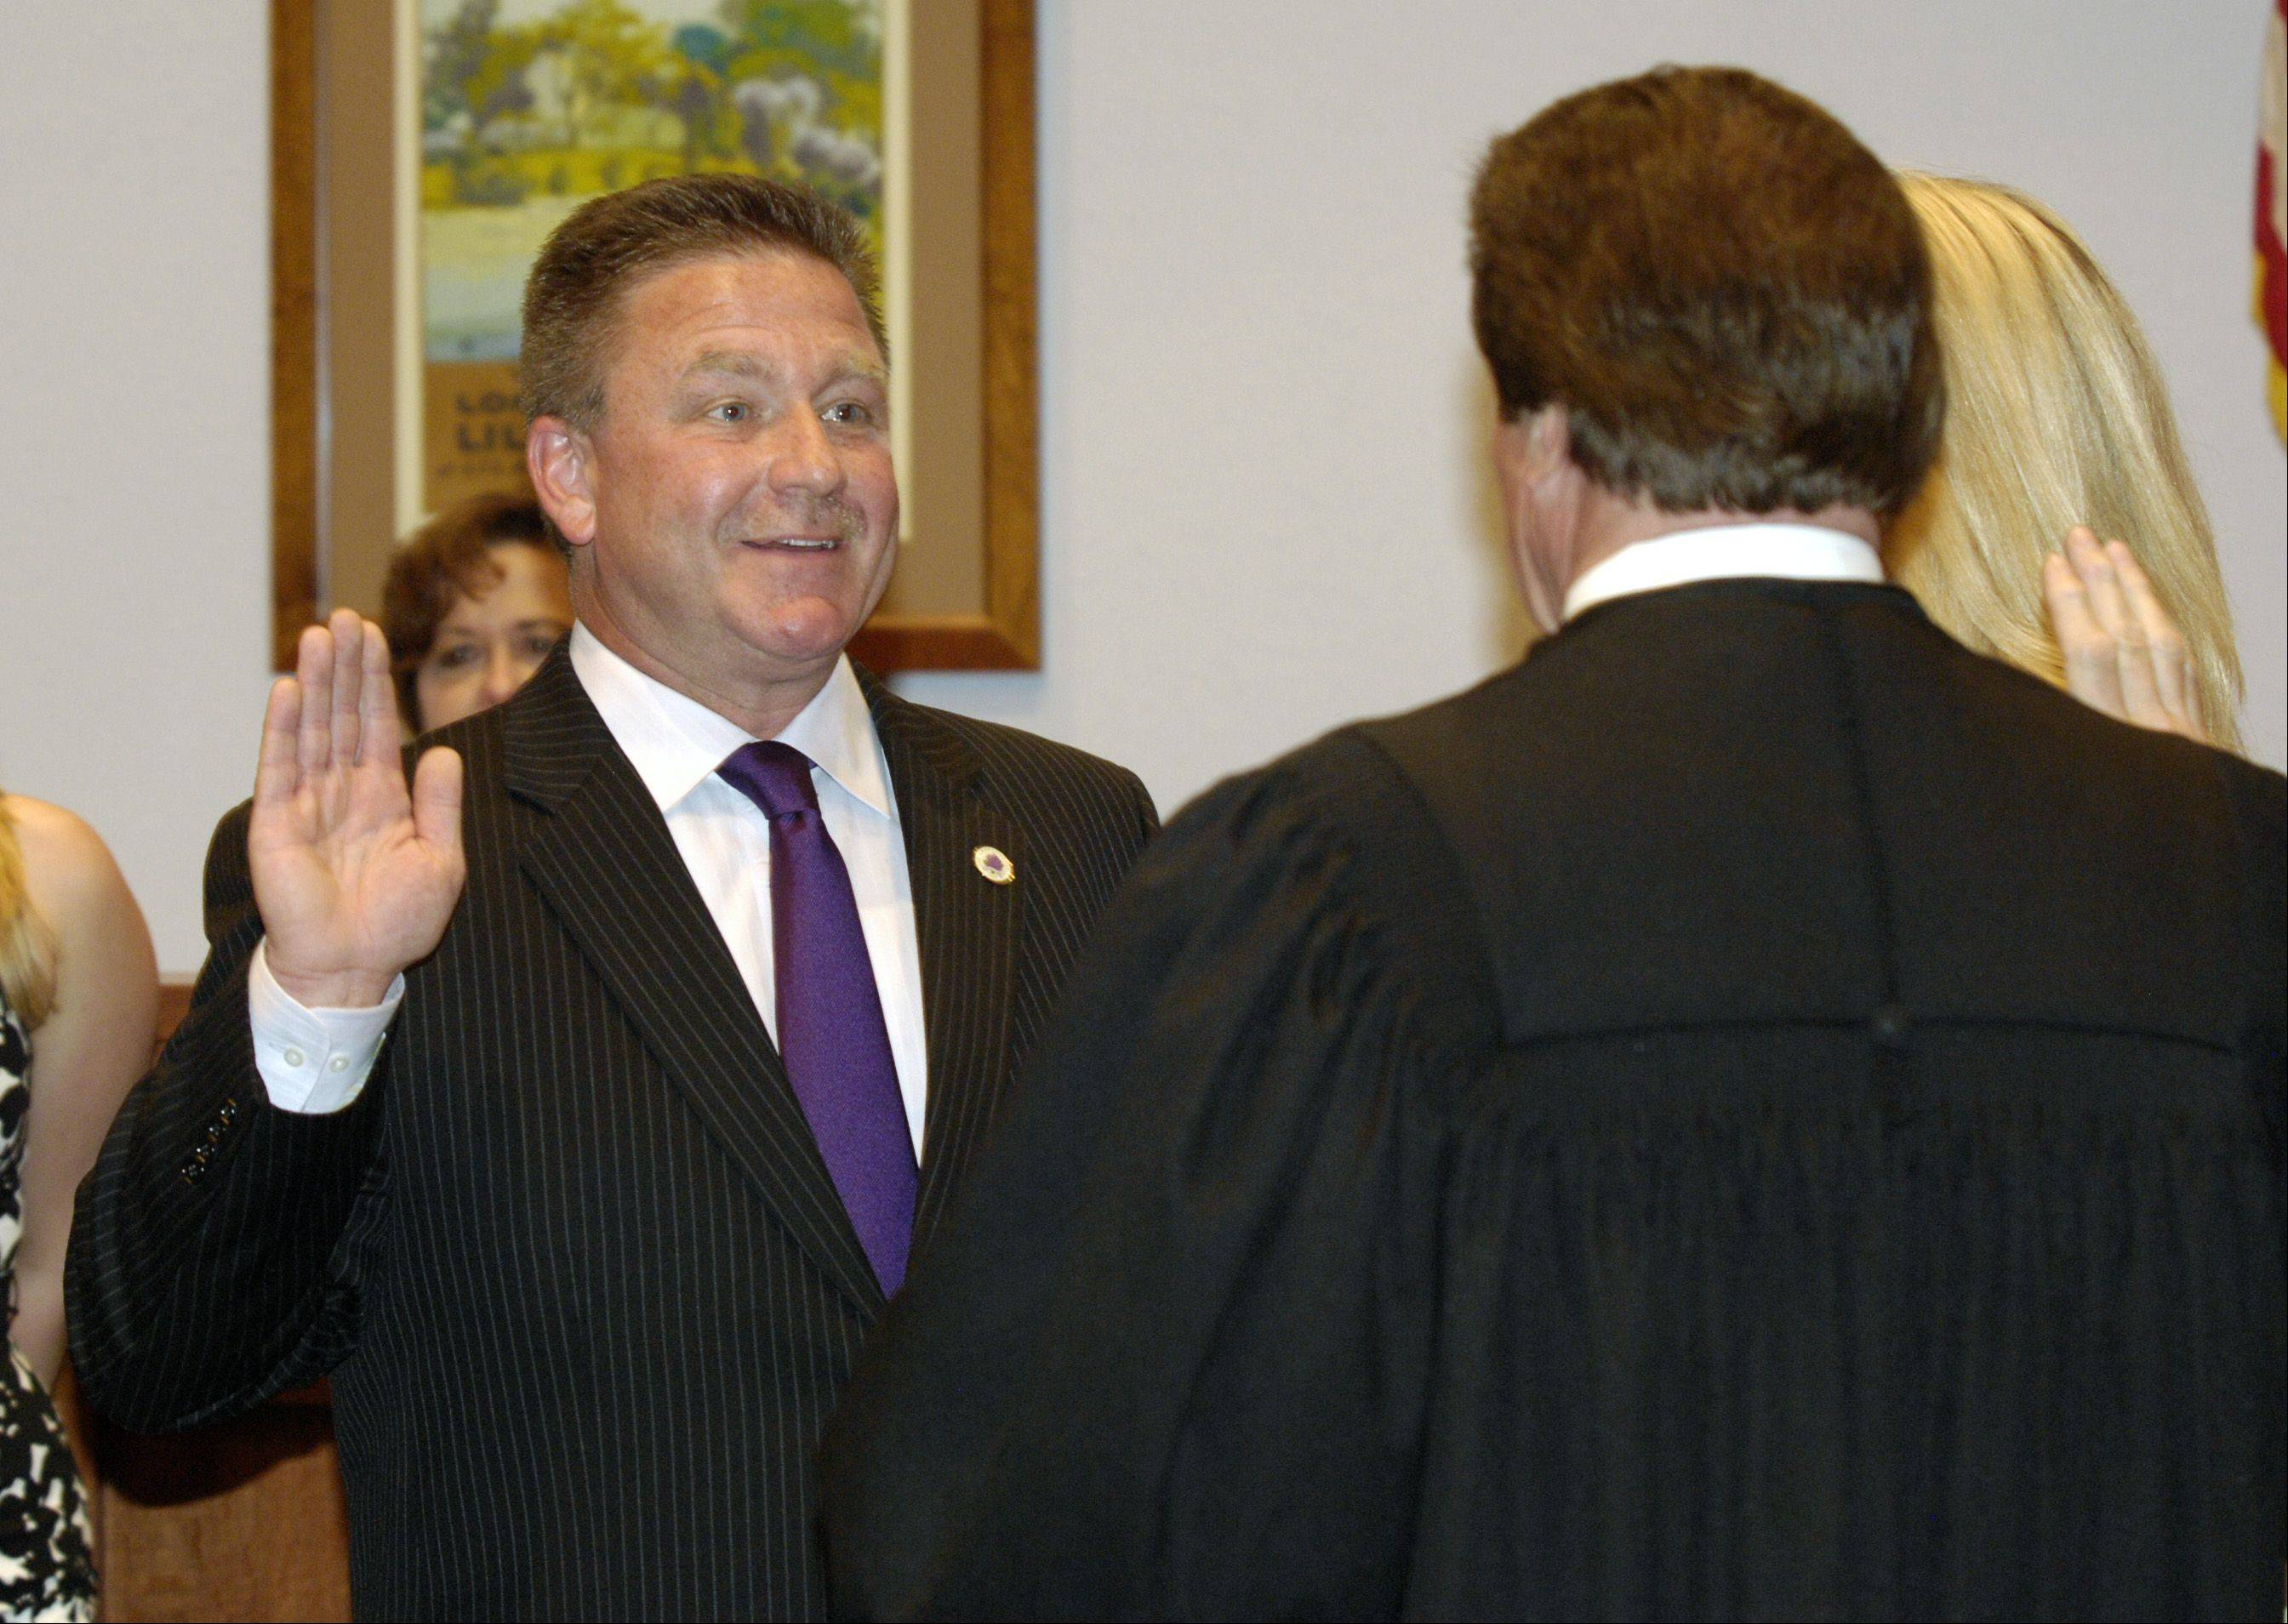 Keith Giagnorio is sworn in as the new Lombard village president, a role he earned by beating John Lotus Novak and Moon Khan in the April 9 election. Giagnorio follows longtime Village President William J. �Bill� Mueller, who served from 1993 until his death in August 2012.